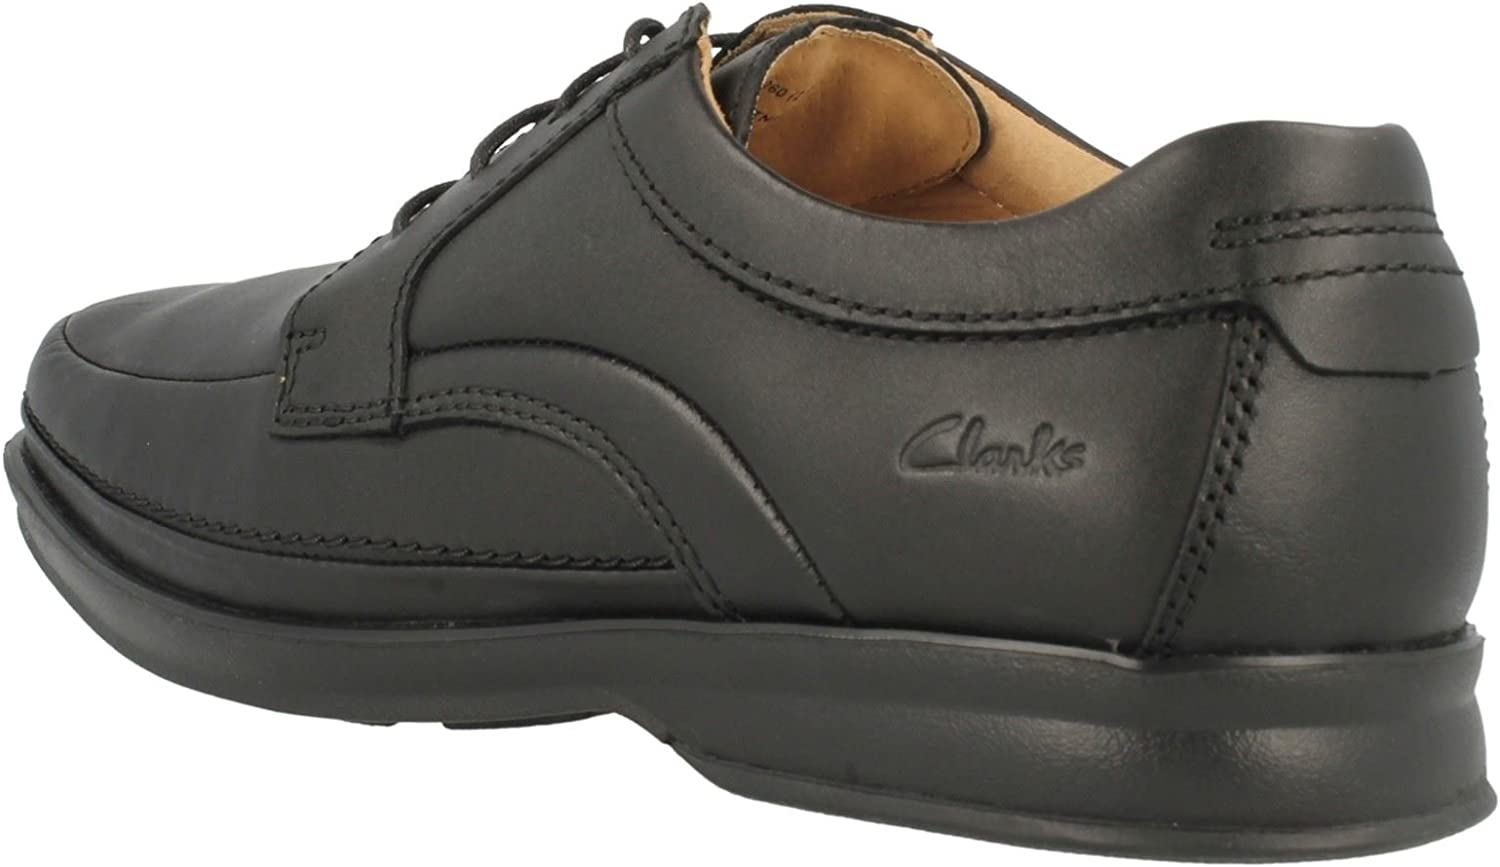 Mens Clarks Wide Fitting Lace Up Shoes Scopic Way